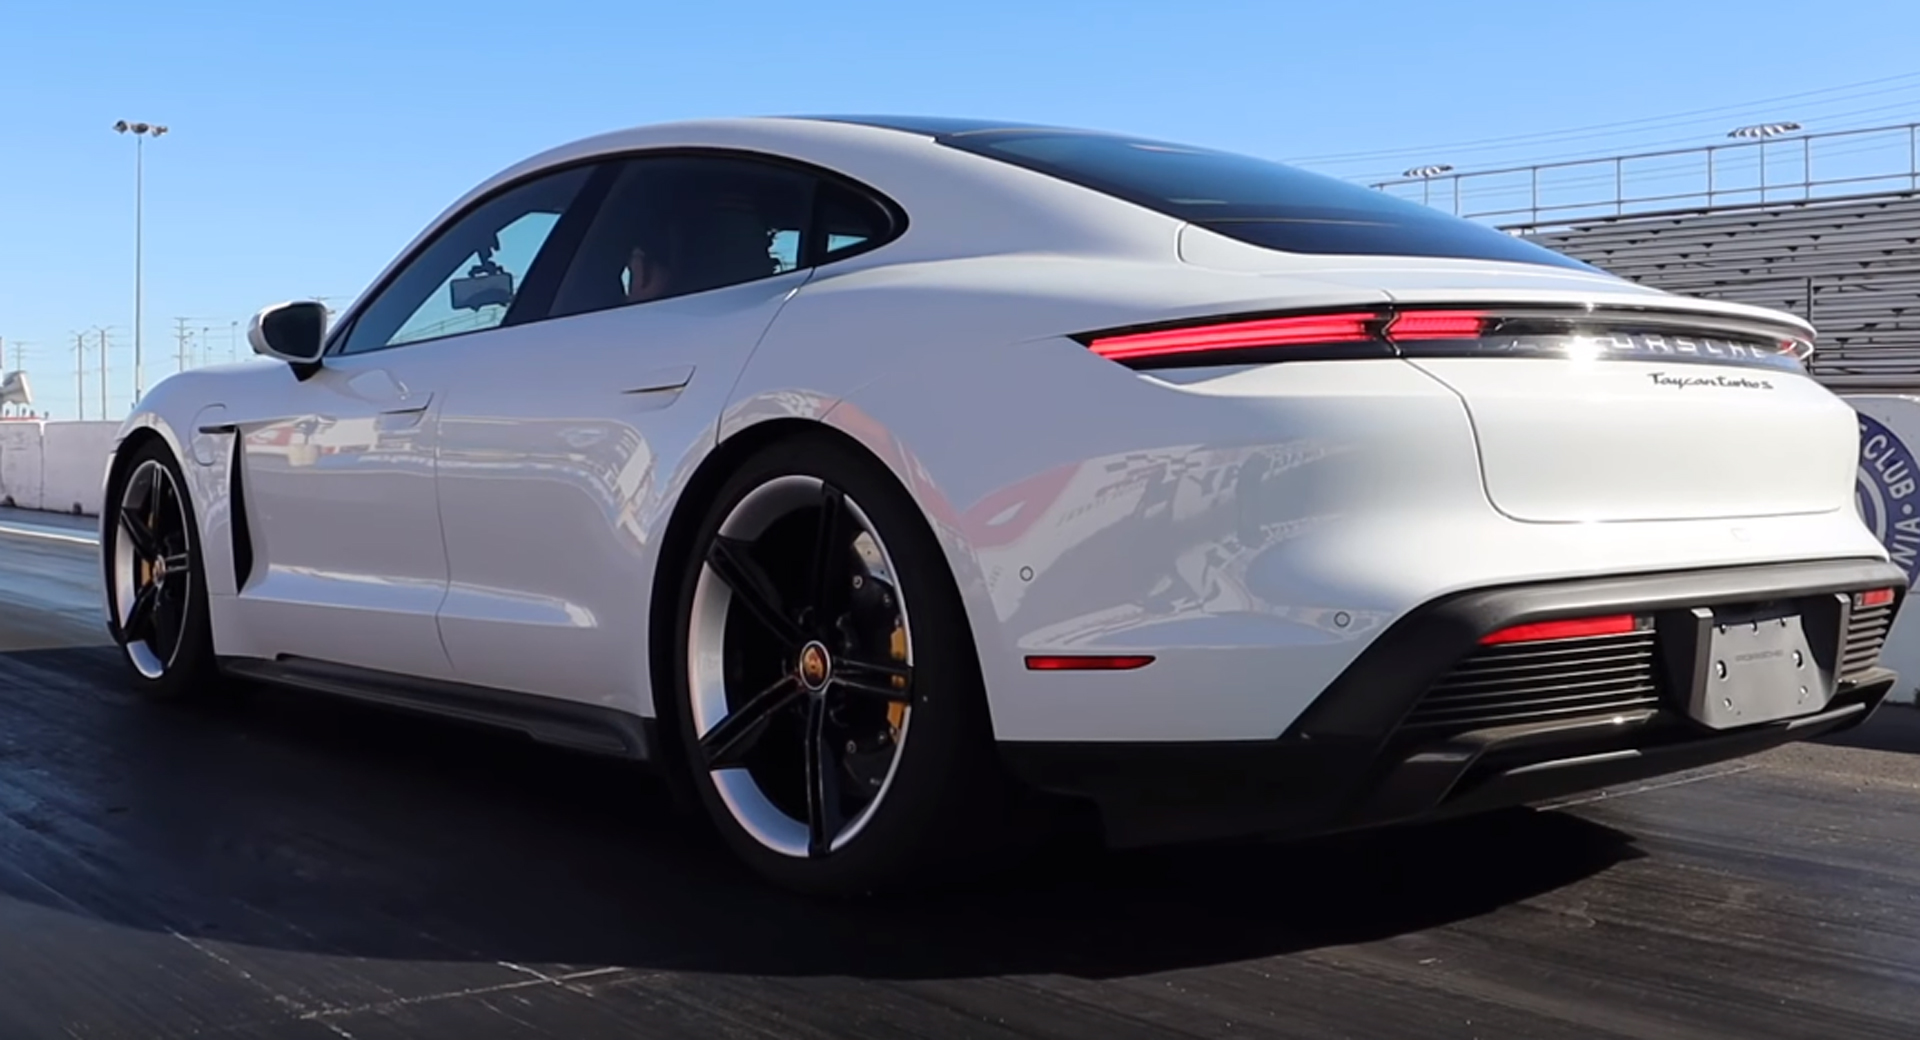 Porsche Taycan Turbo S Hits 60 MPH In 2.4-Seconds, Quarter Mile In 10.5-Seconds   Carscoops